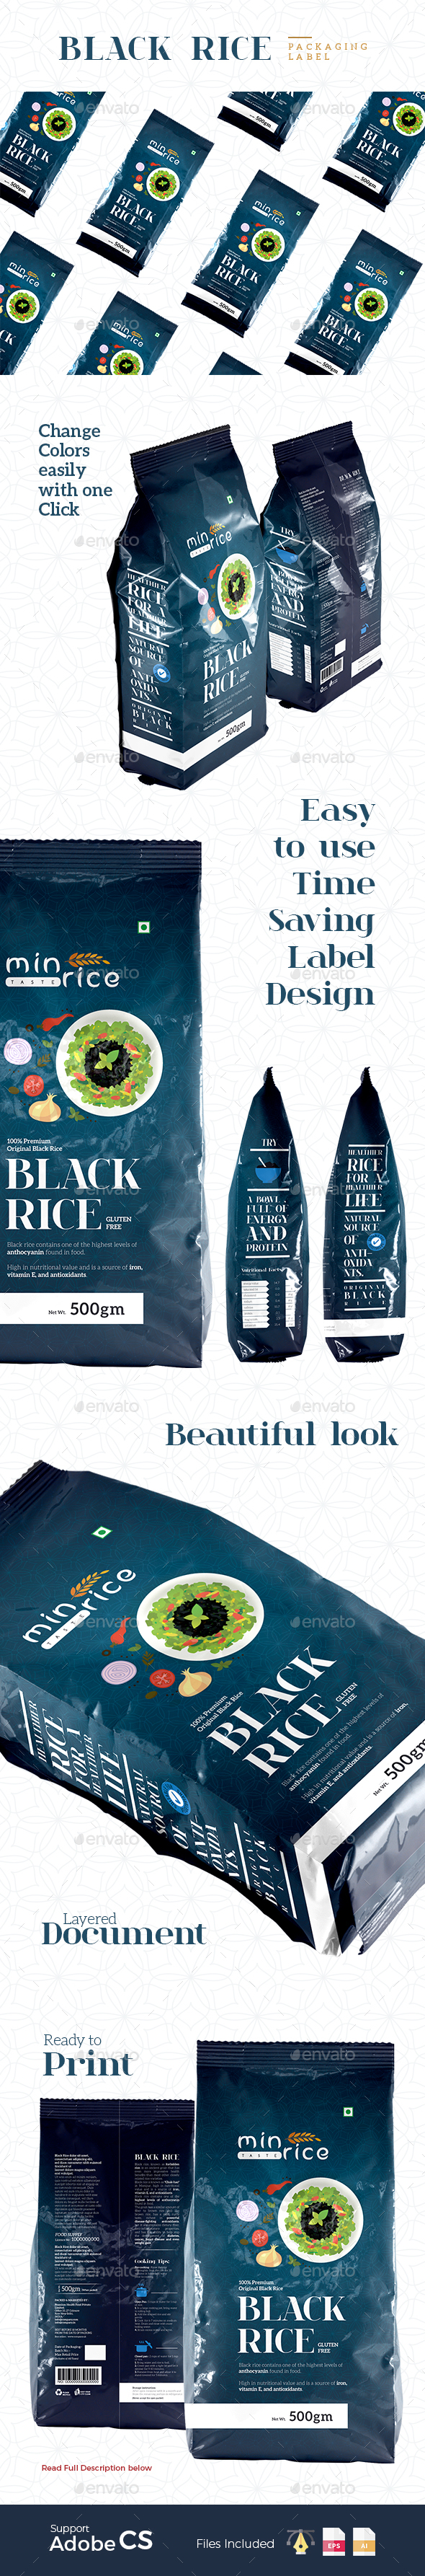 Premium Black Rice Packaging - Packaging Print Templates